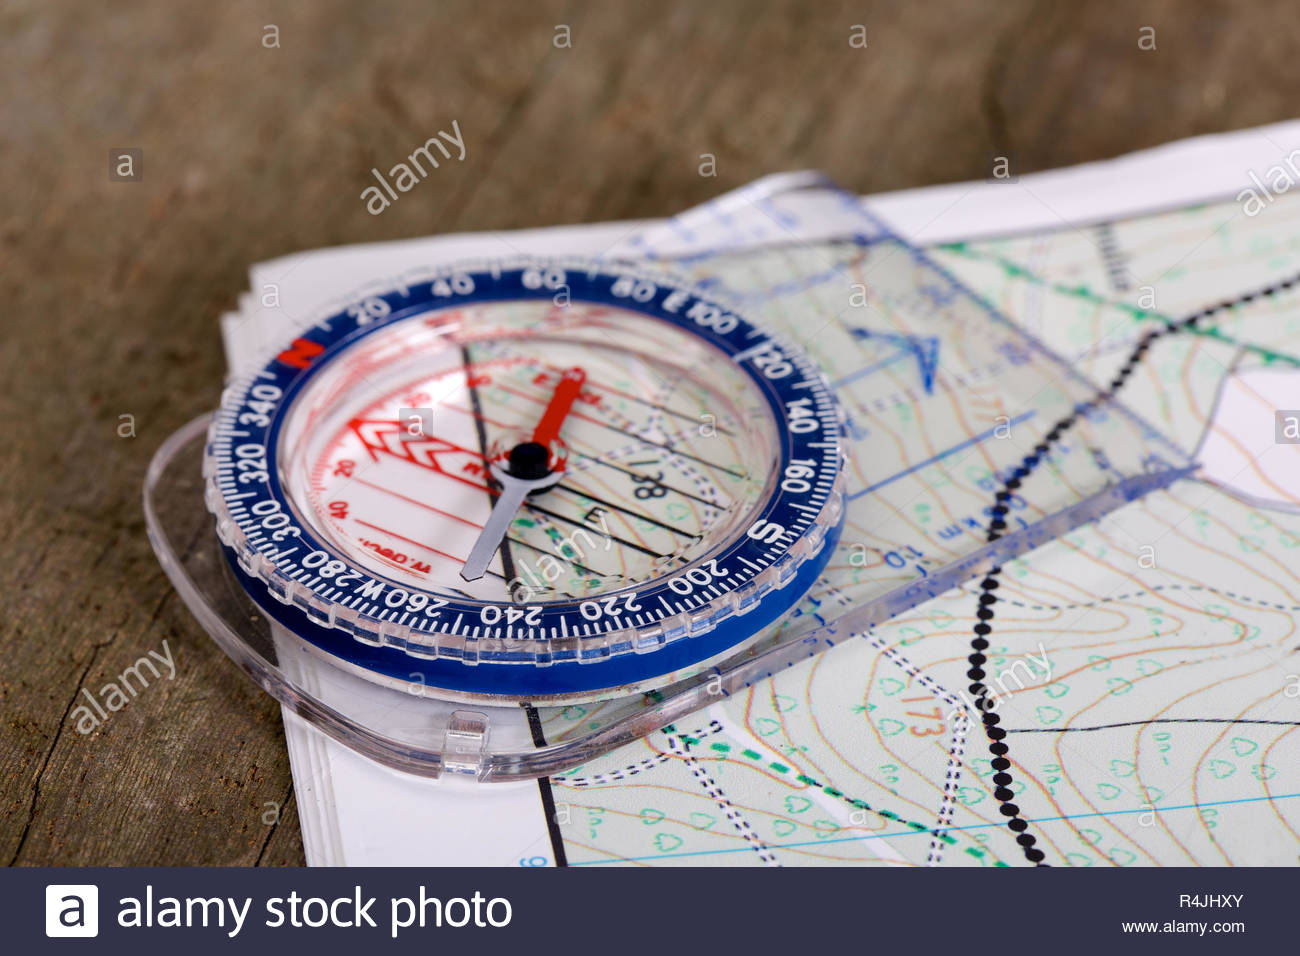 Modern plastic compass with scales and rulers, wooden background and detailed hiking map - Stock Image